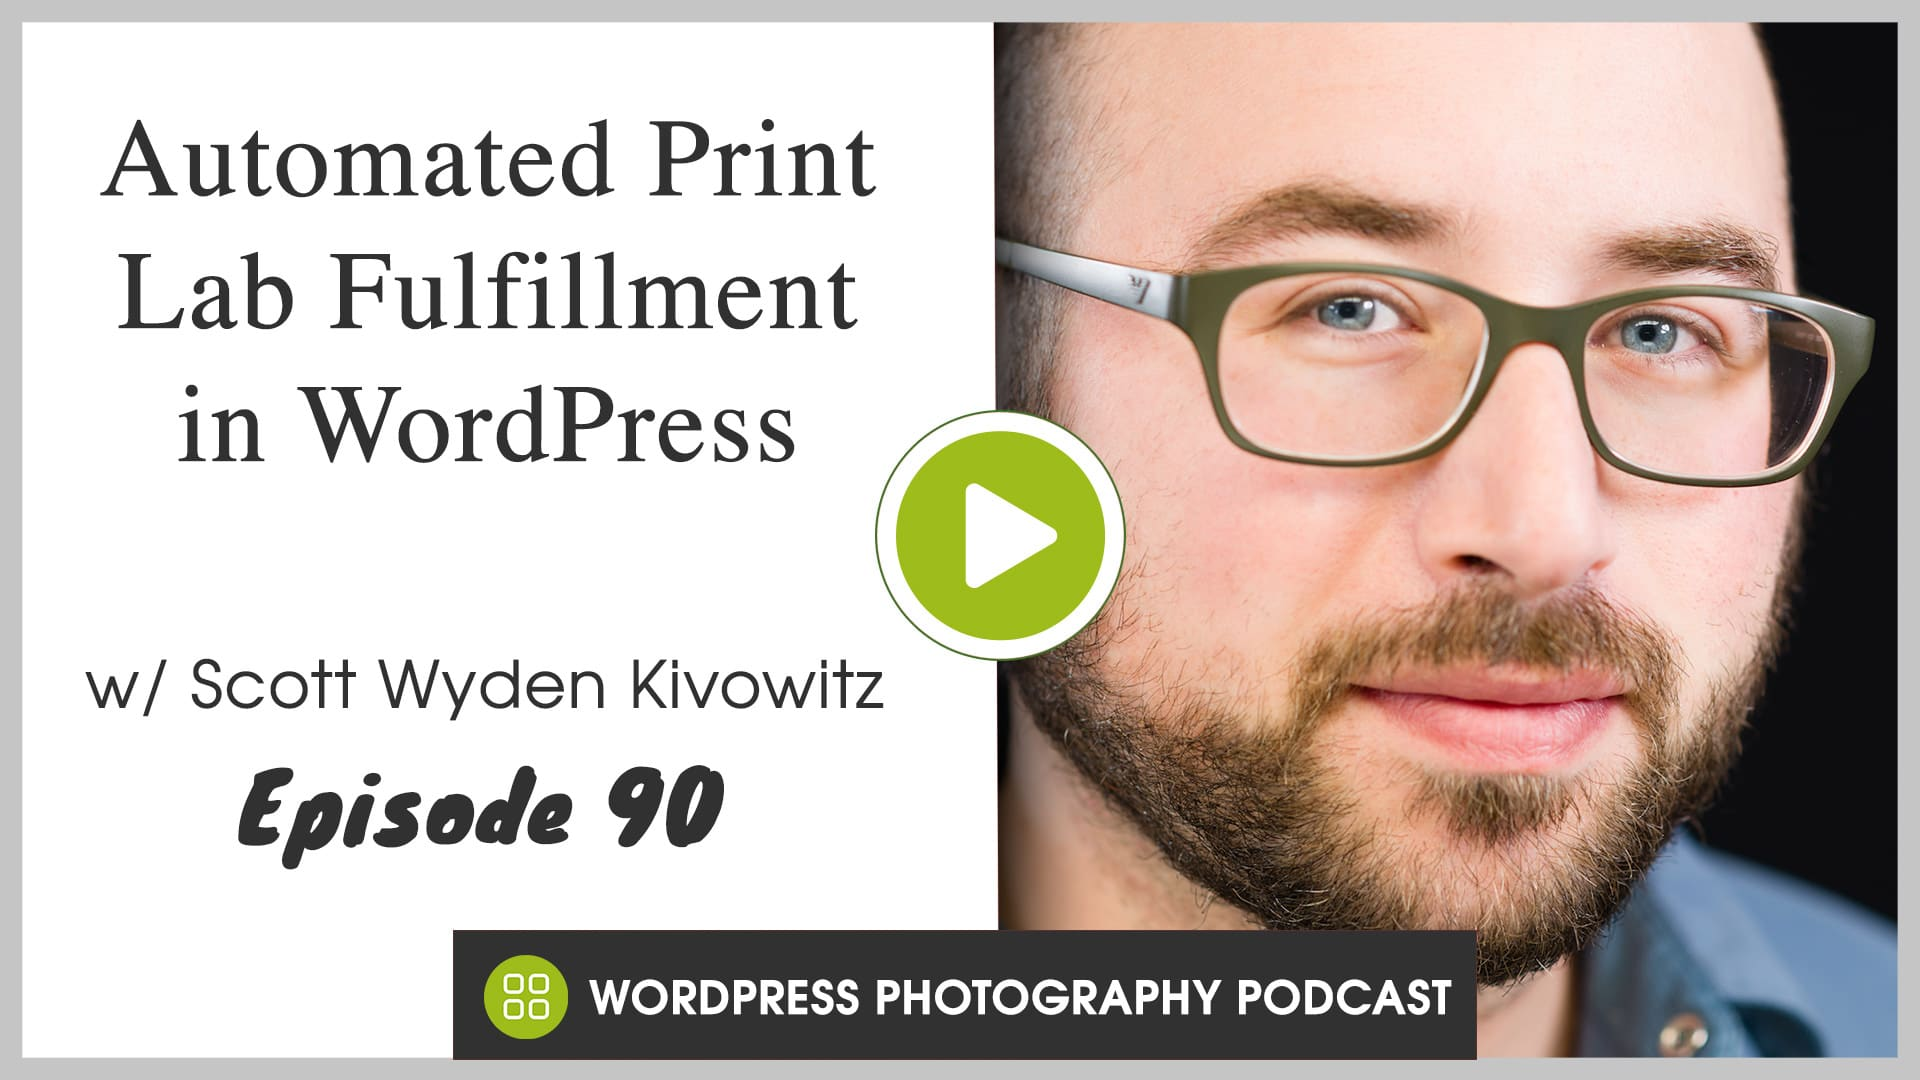 Episode 90 – Automated Print Lab Fulfillment in WordPress